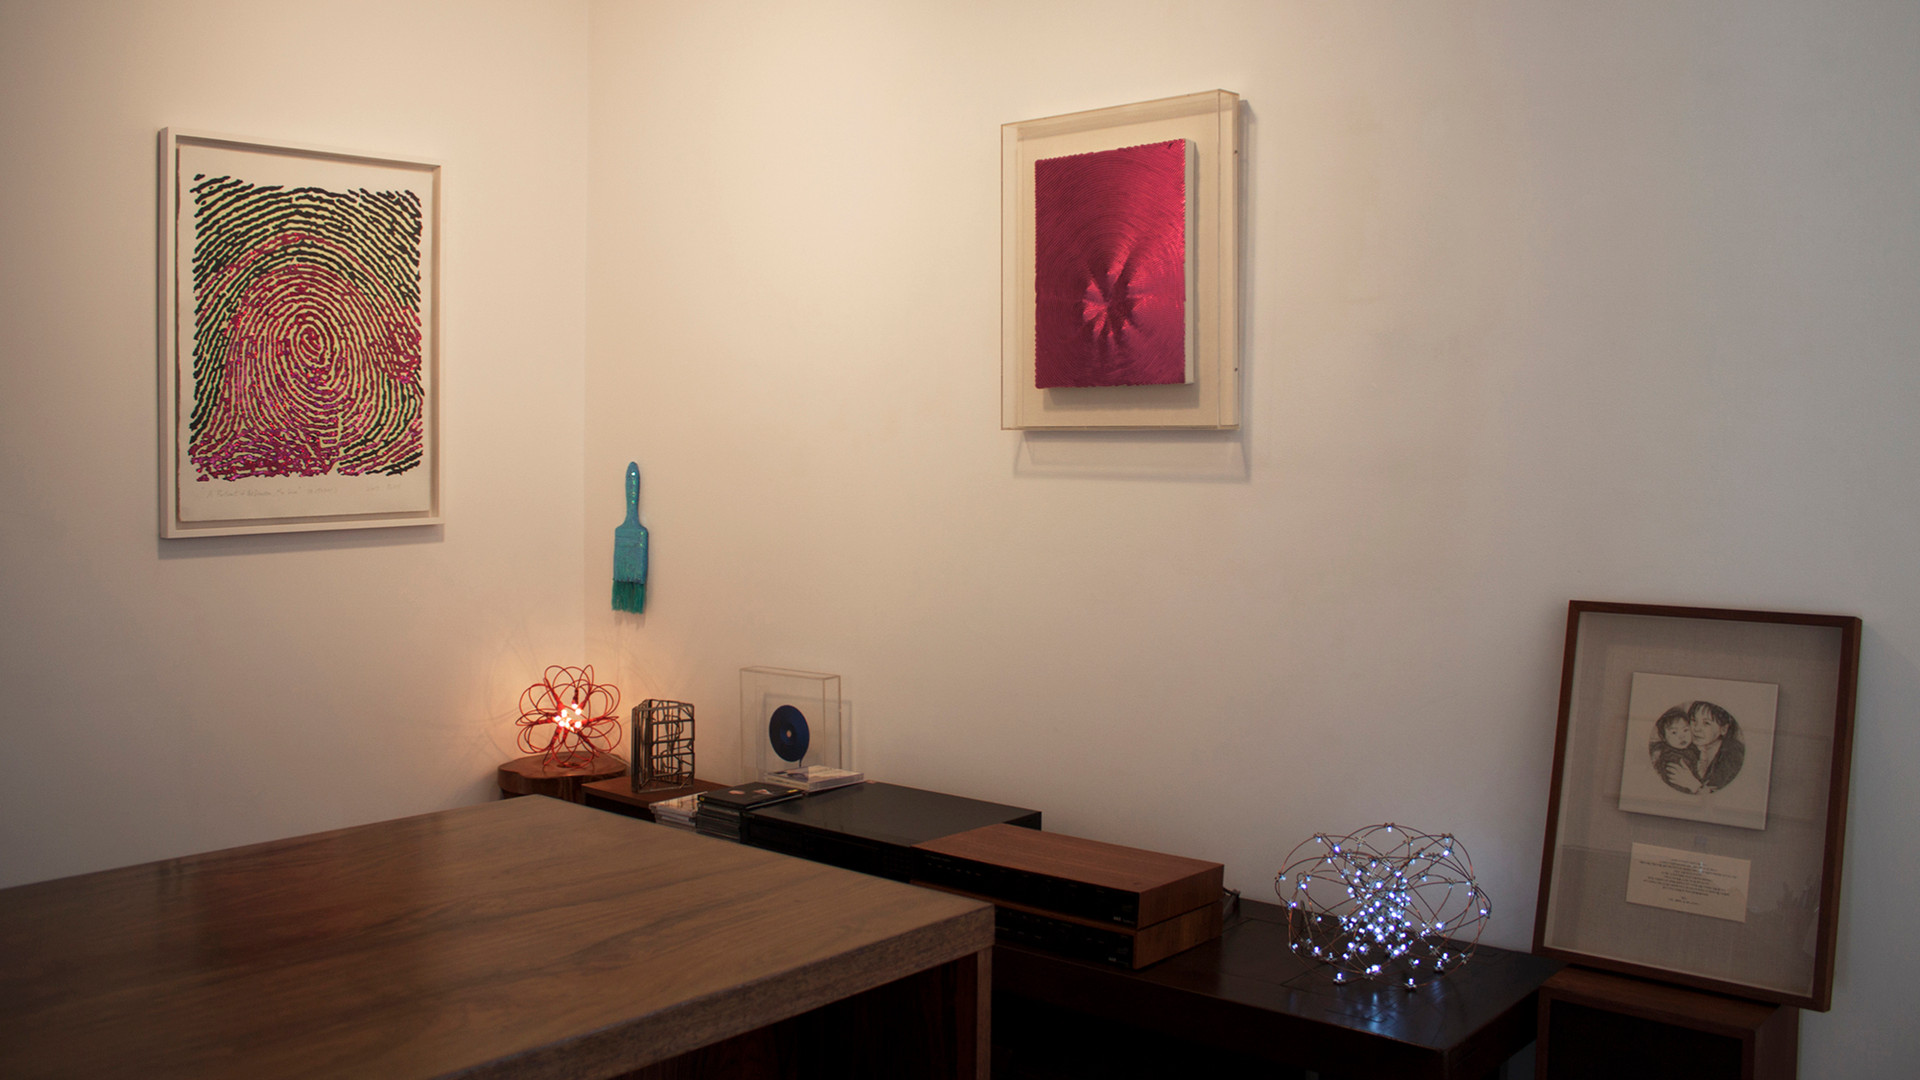 Installation view of Simon's Collection, Gallery Simon, 2018